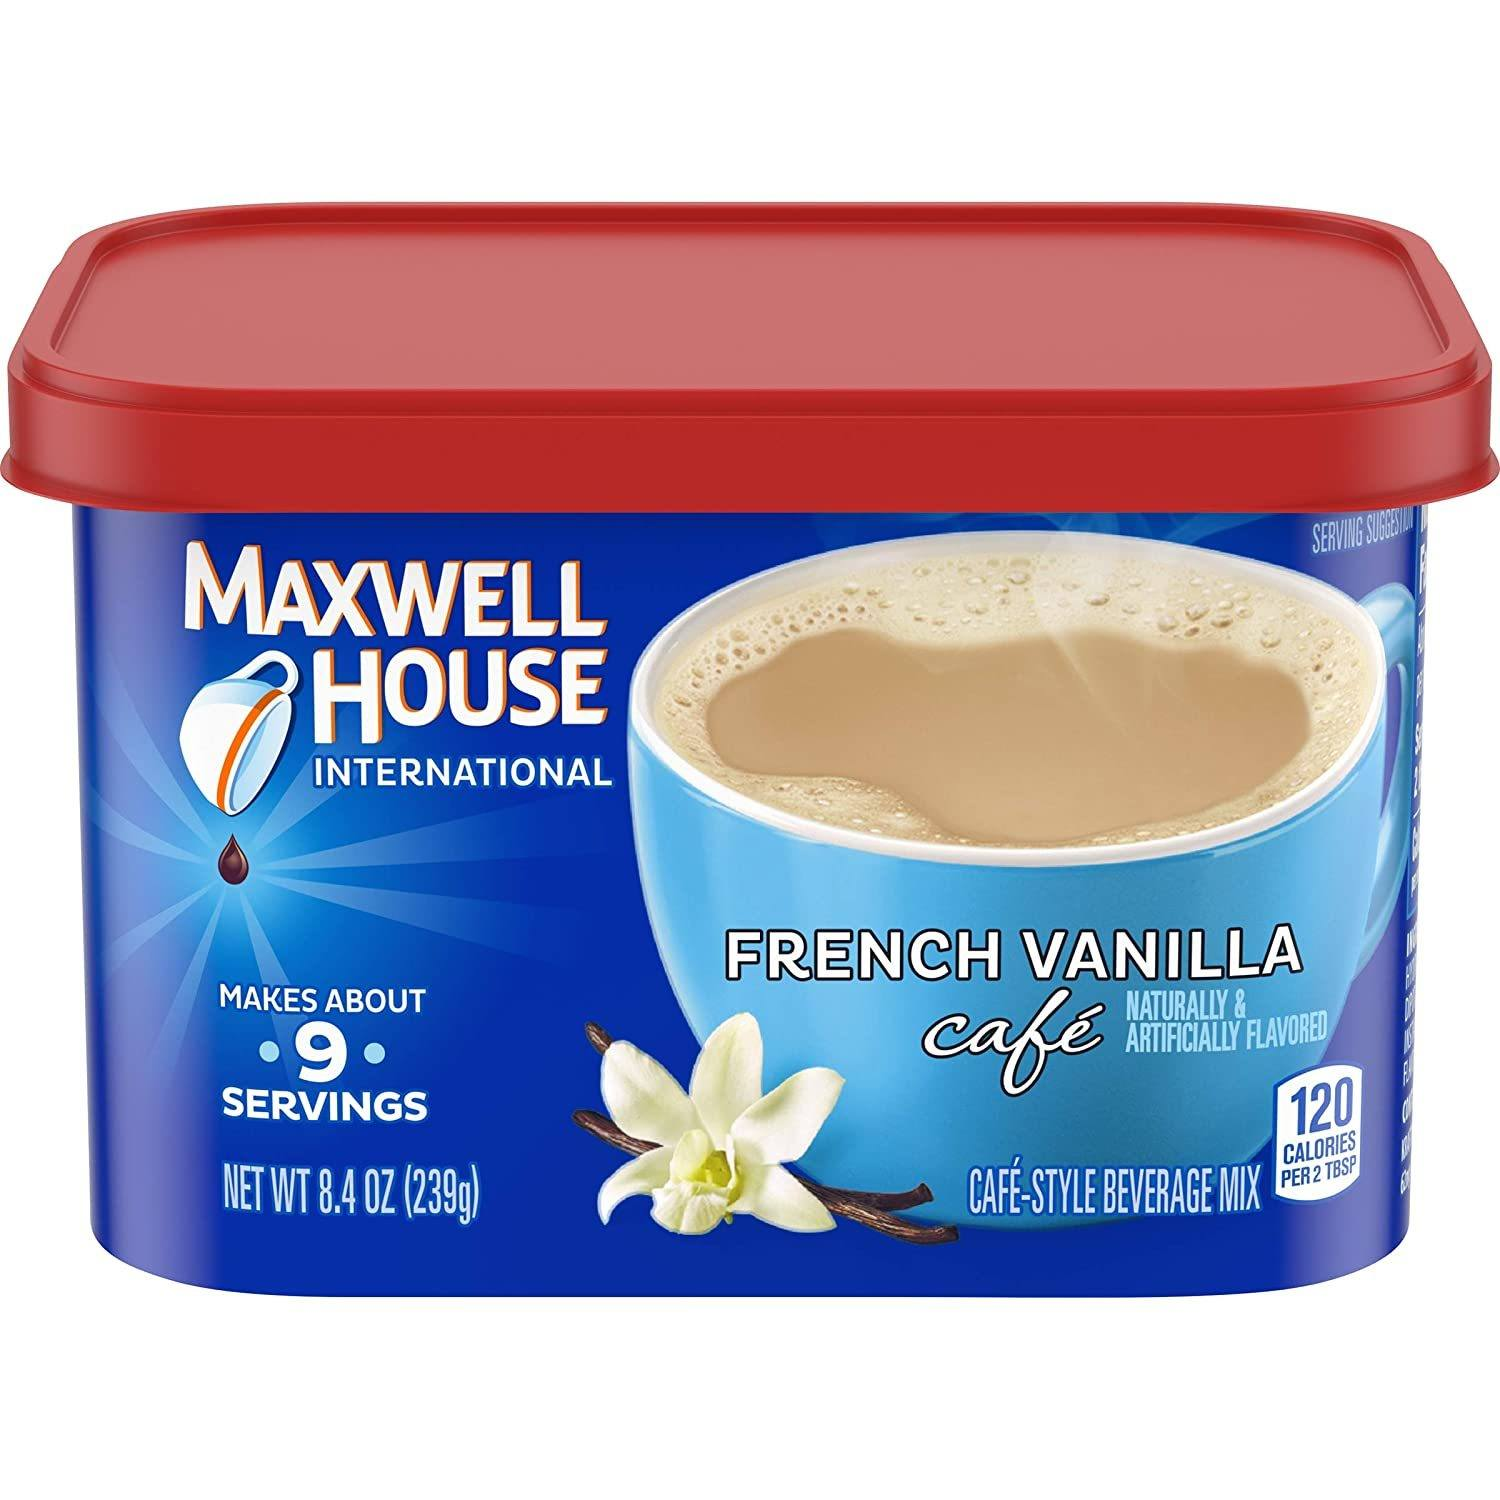 Maxwell House International French Vanilla Café Instant Coffee